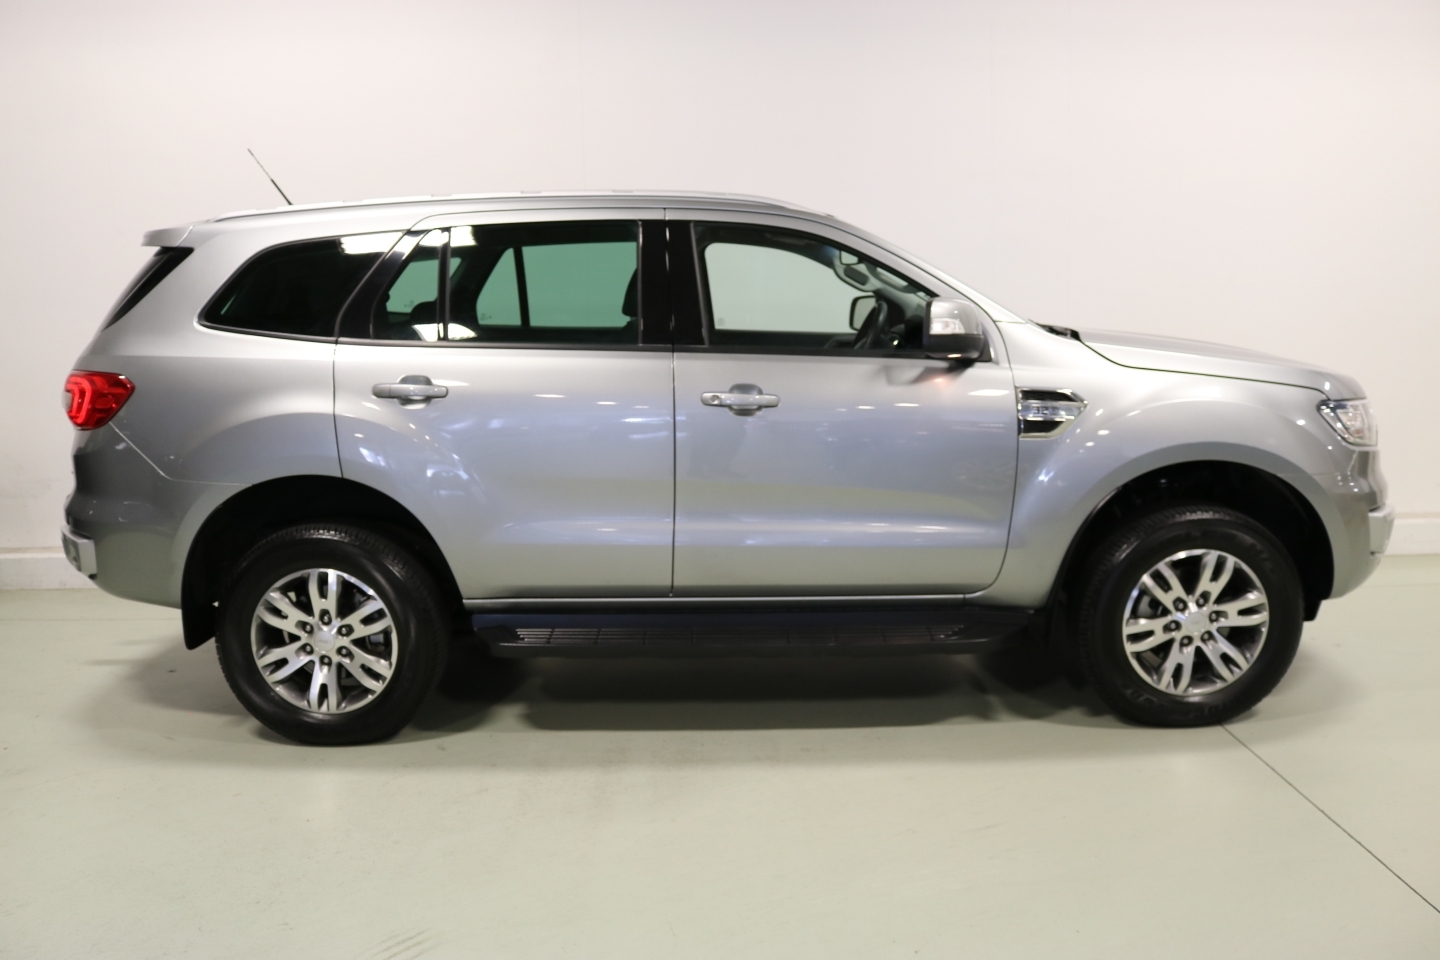 ford everest nz price with 1008986 on Toyota Fortuner A Future Favourite further 2014 furthermore Watch as well Plywood Sailboats further 999459948.